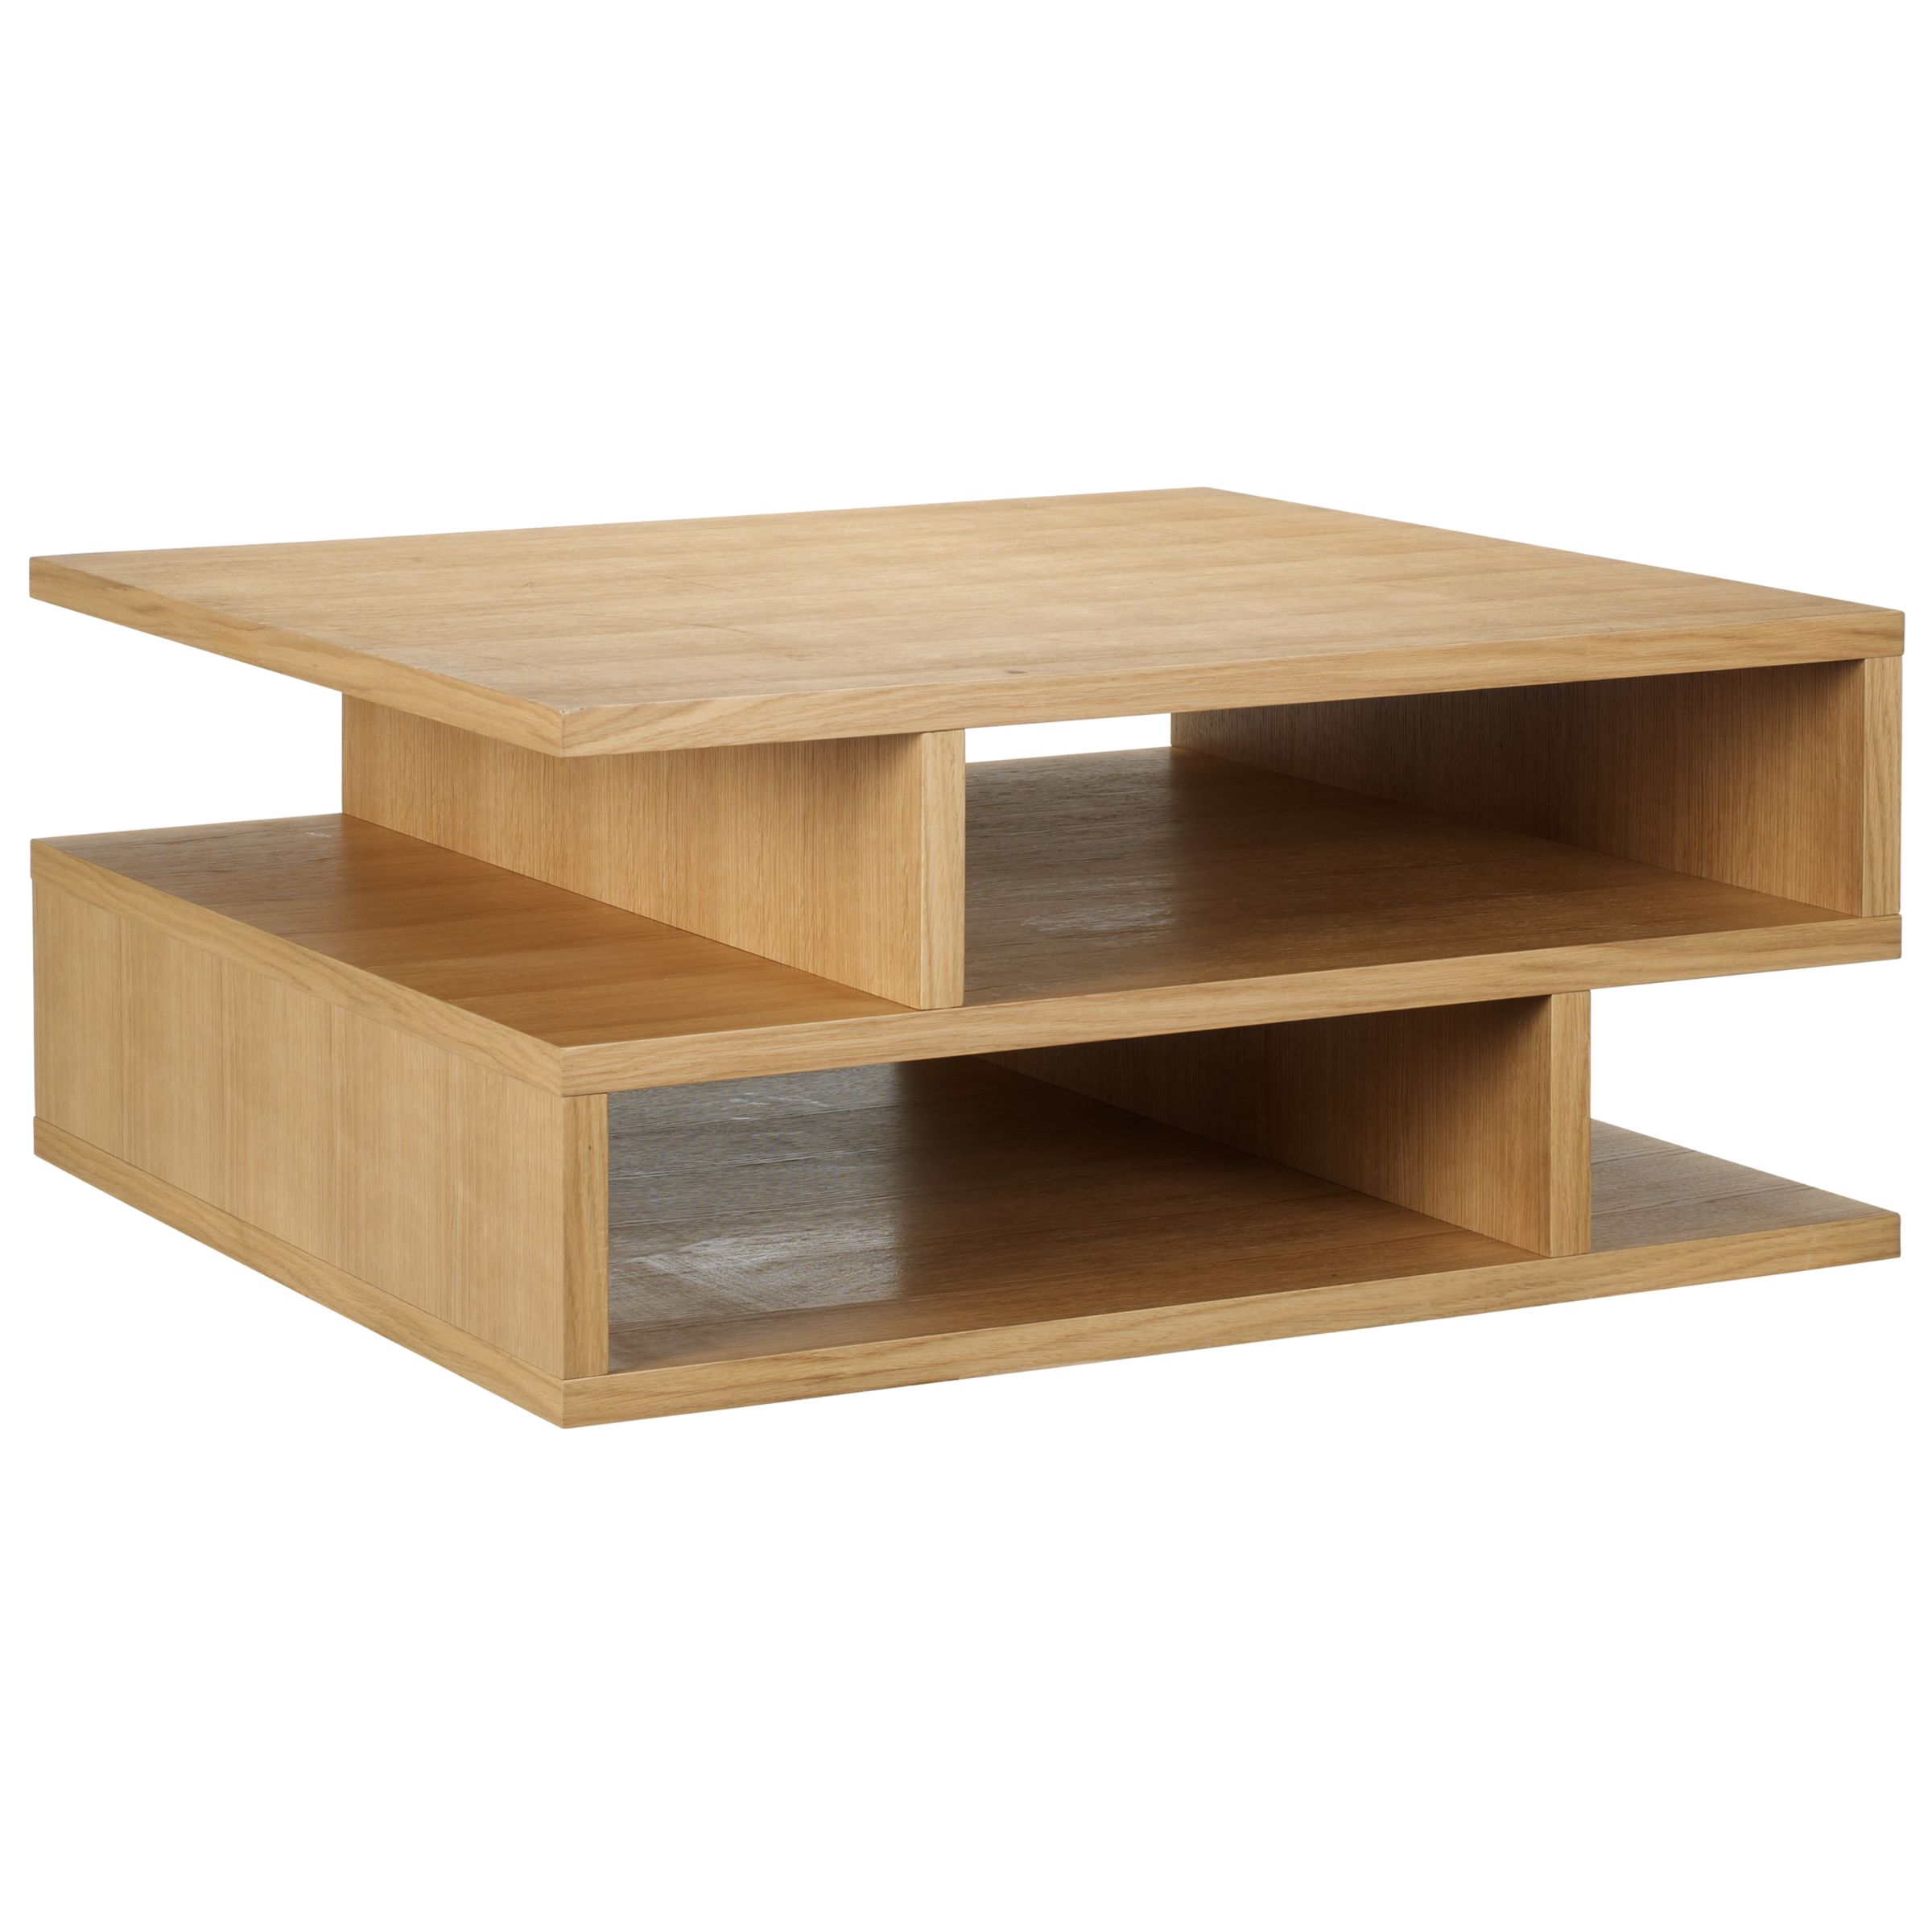 Oak Square Coffee Table Furniture